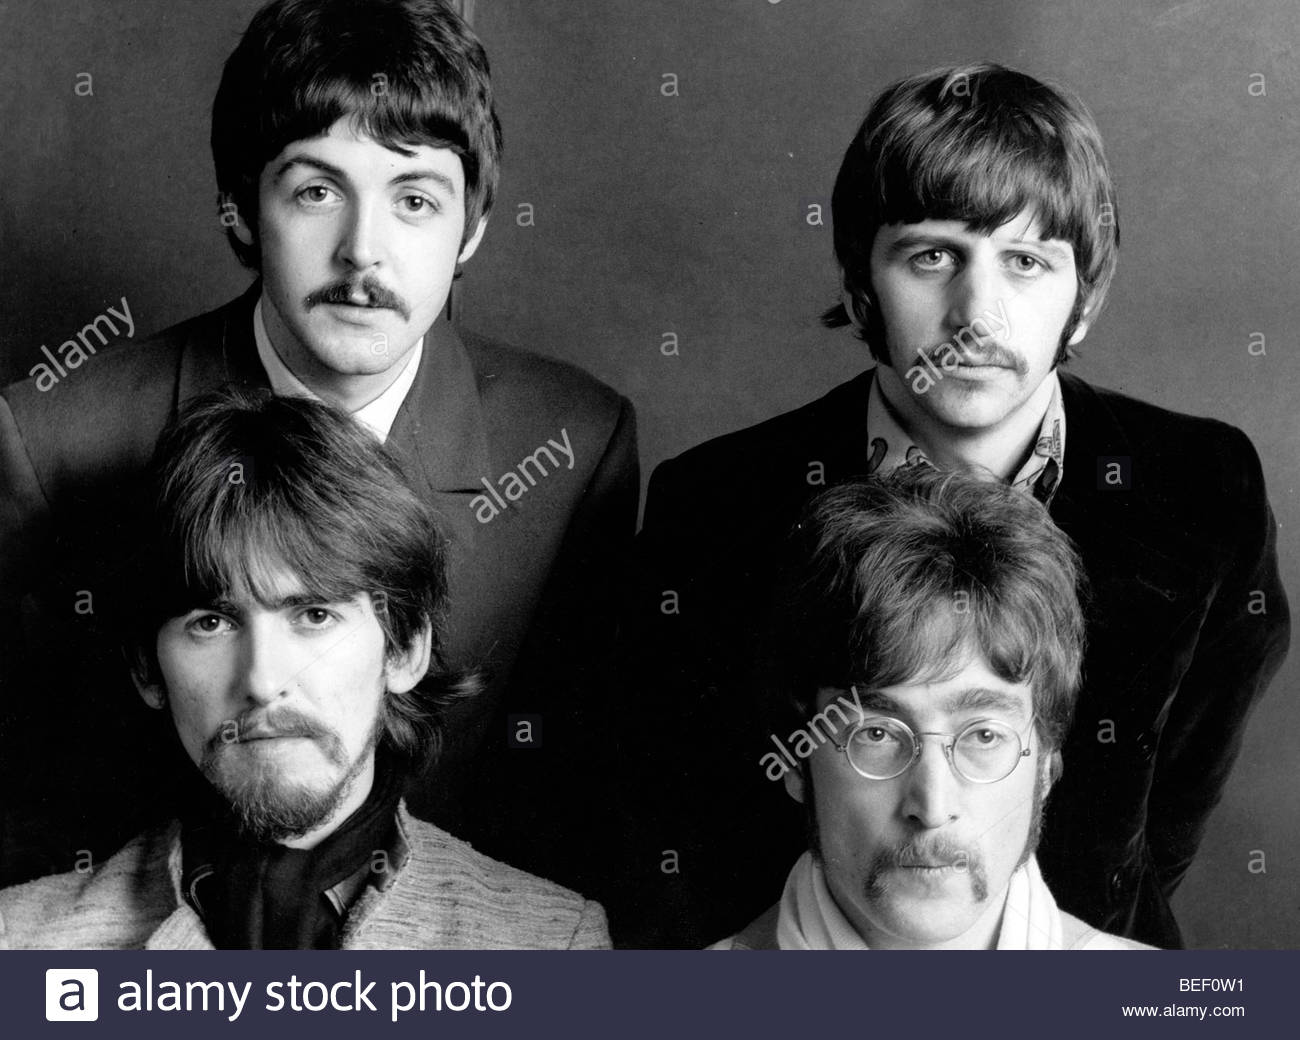 Retrato de la banda de rock The Beatles Imagen De Stock